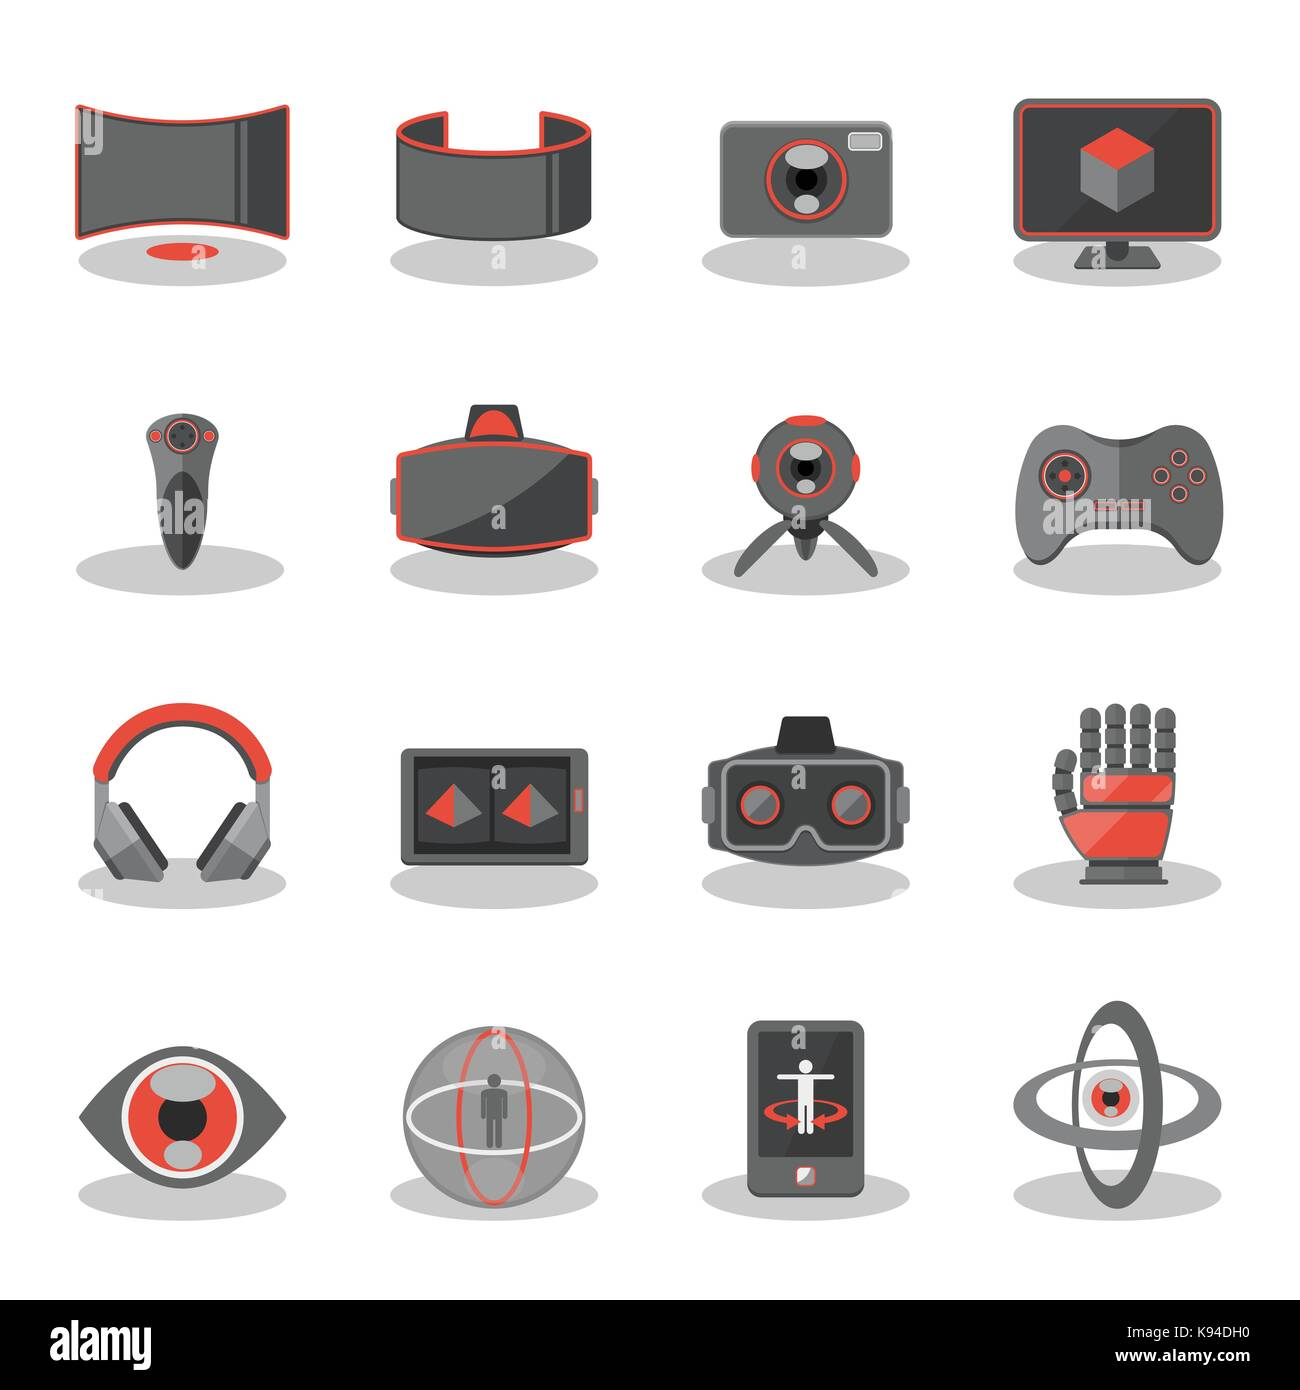 Flat icons for Virtual Reality innovation technologies, AR glasses